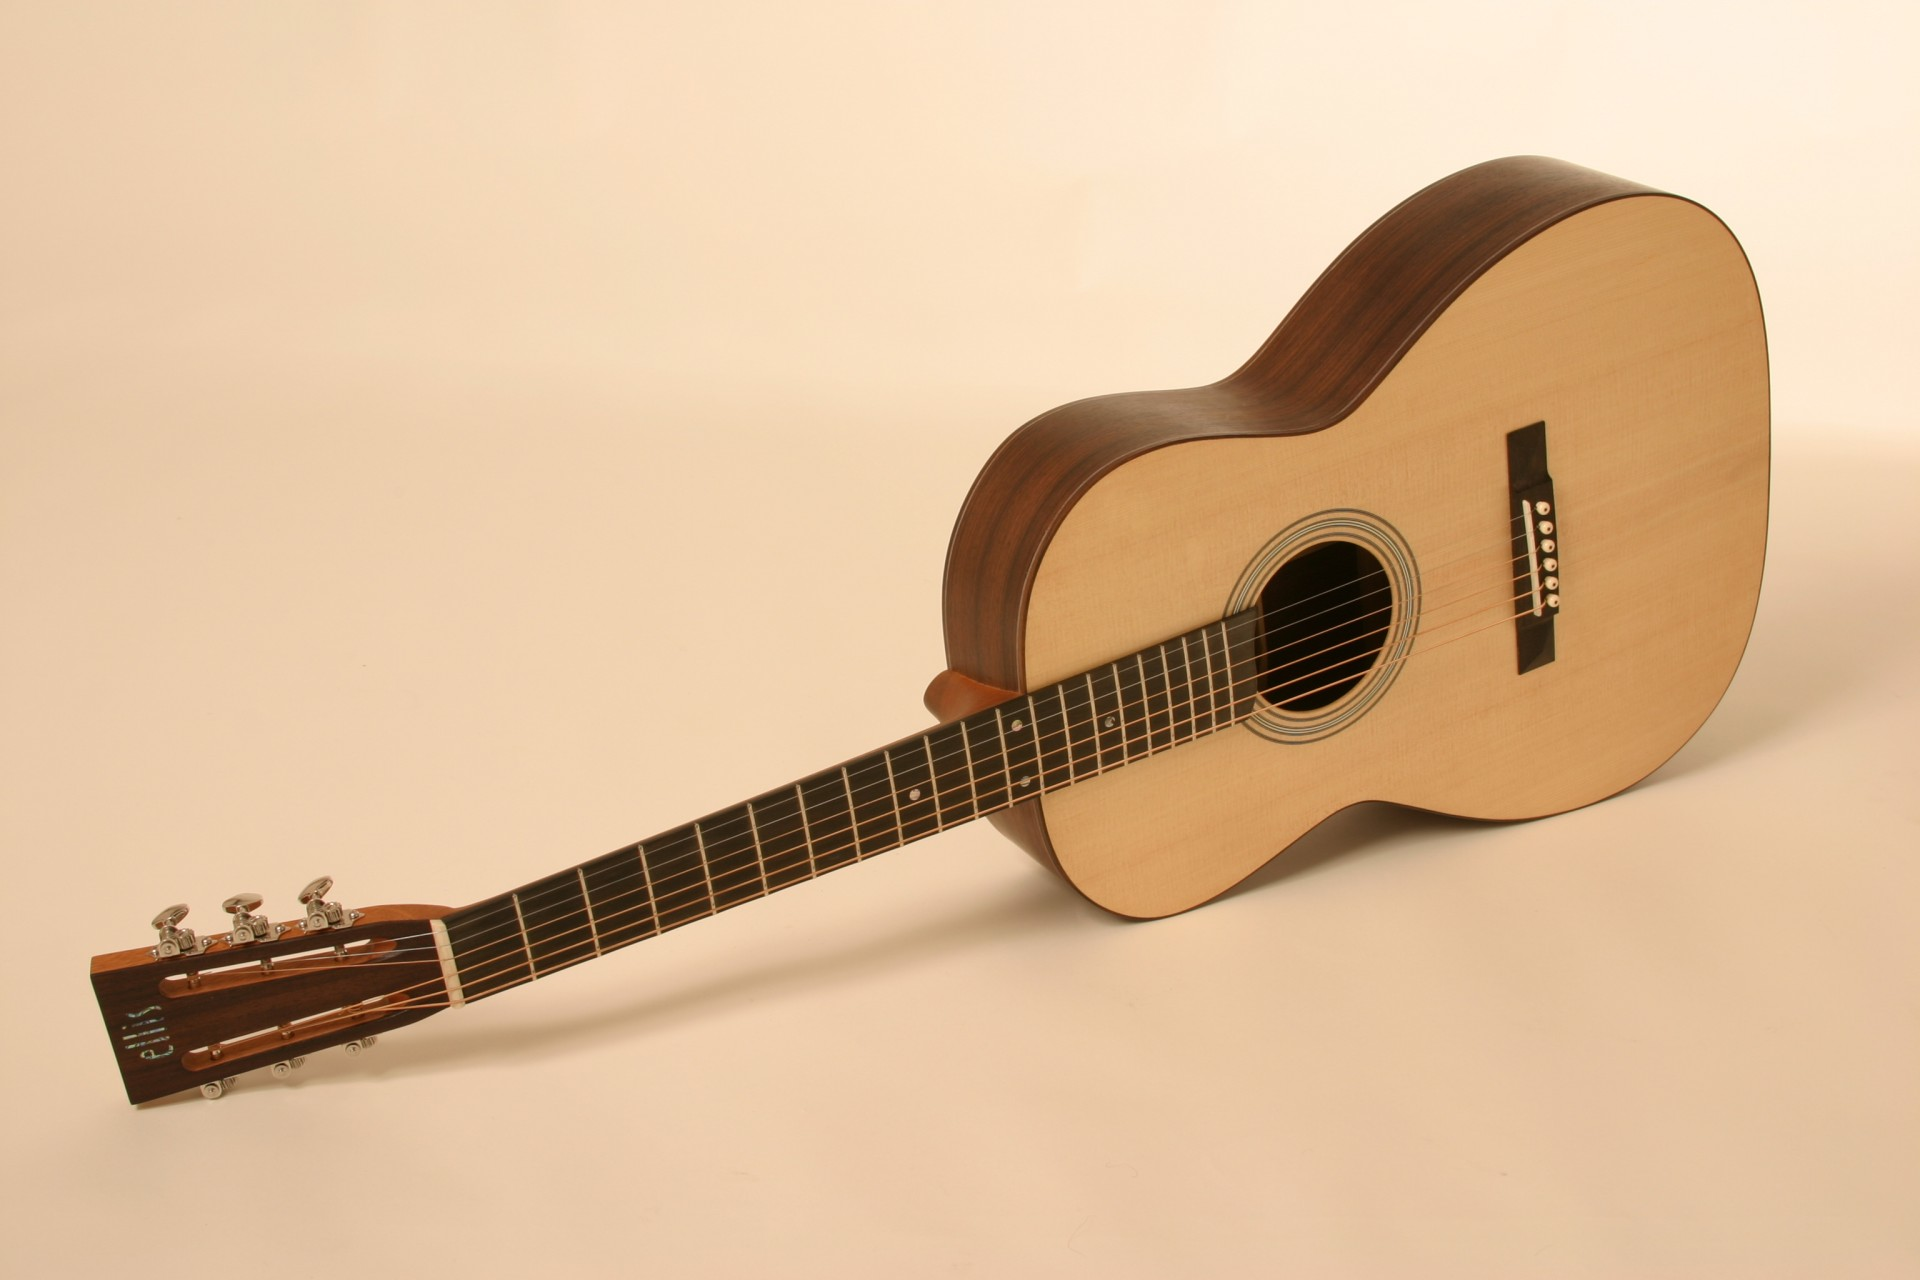 ellis small body 000 standard model